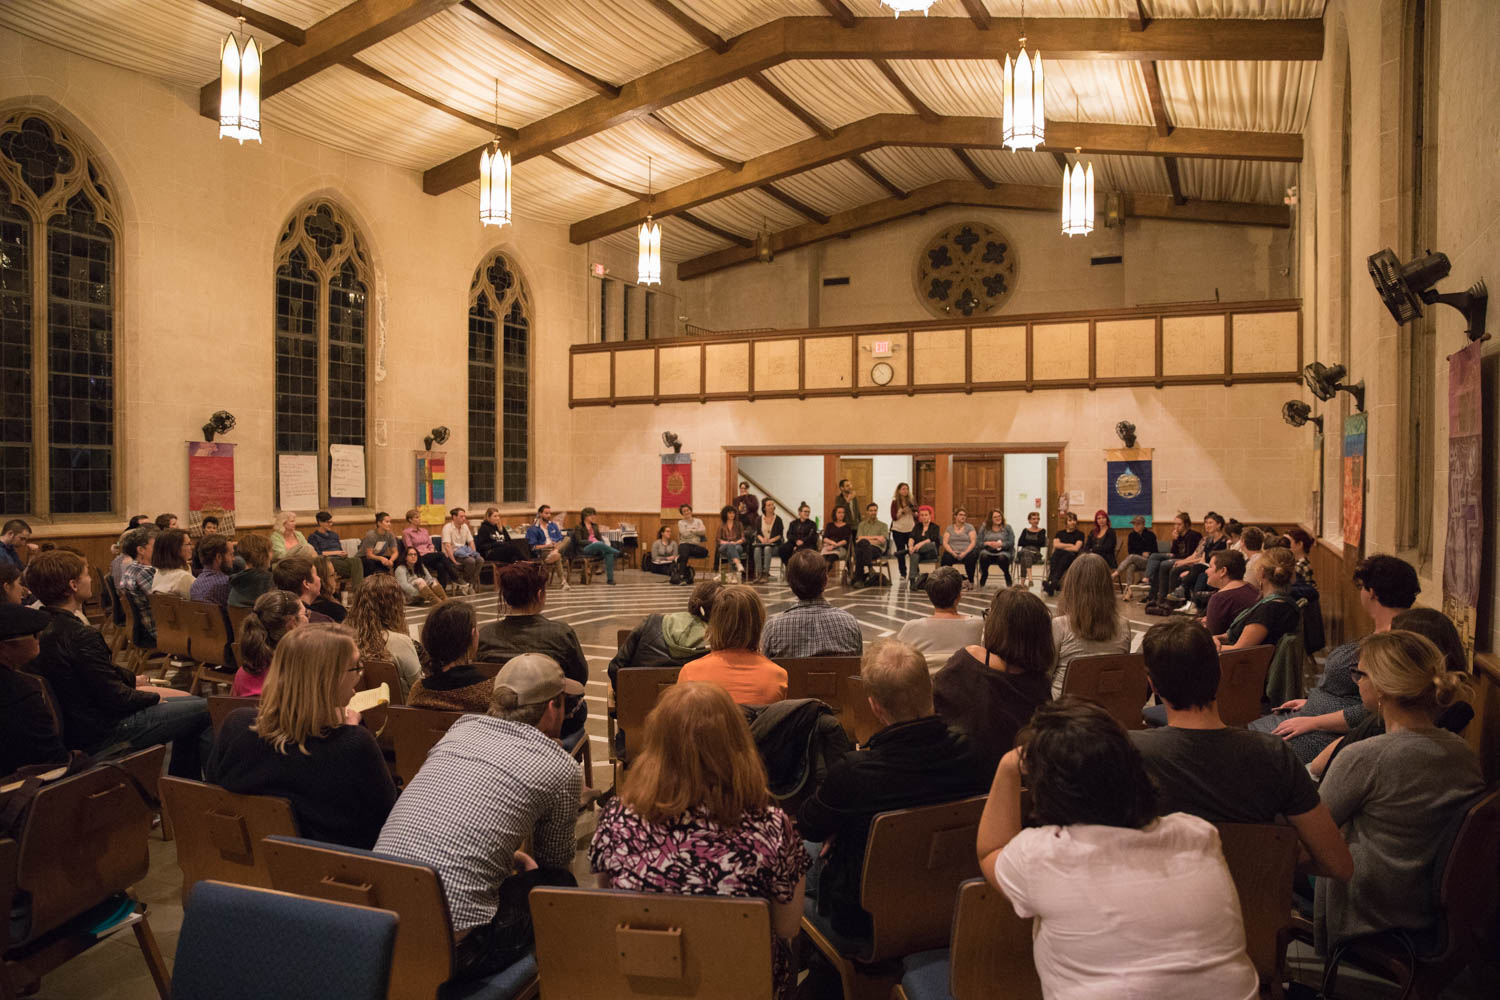 Members of the European Dissent gather and discuss social issues February 1, 2017, at the First Unitarian Universalist Church Of New Orleans, Louisiana, to network and collaborate in the pursuit of racial justice. Photo credit: Osama Ayyad